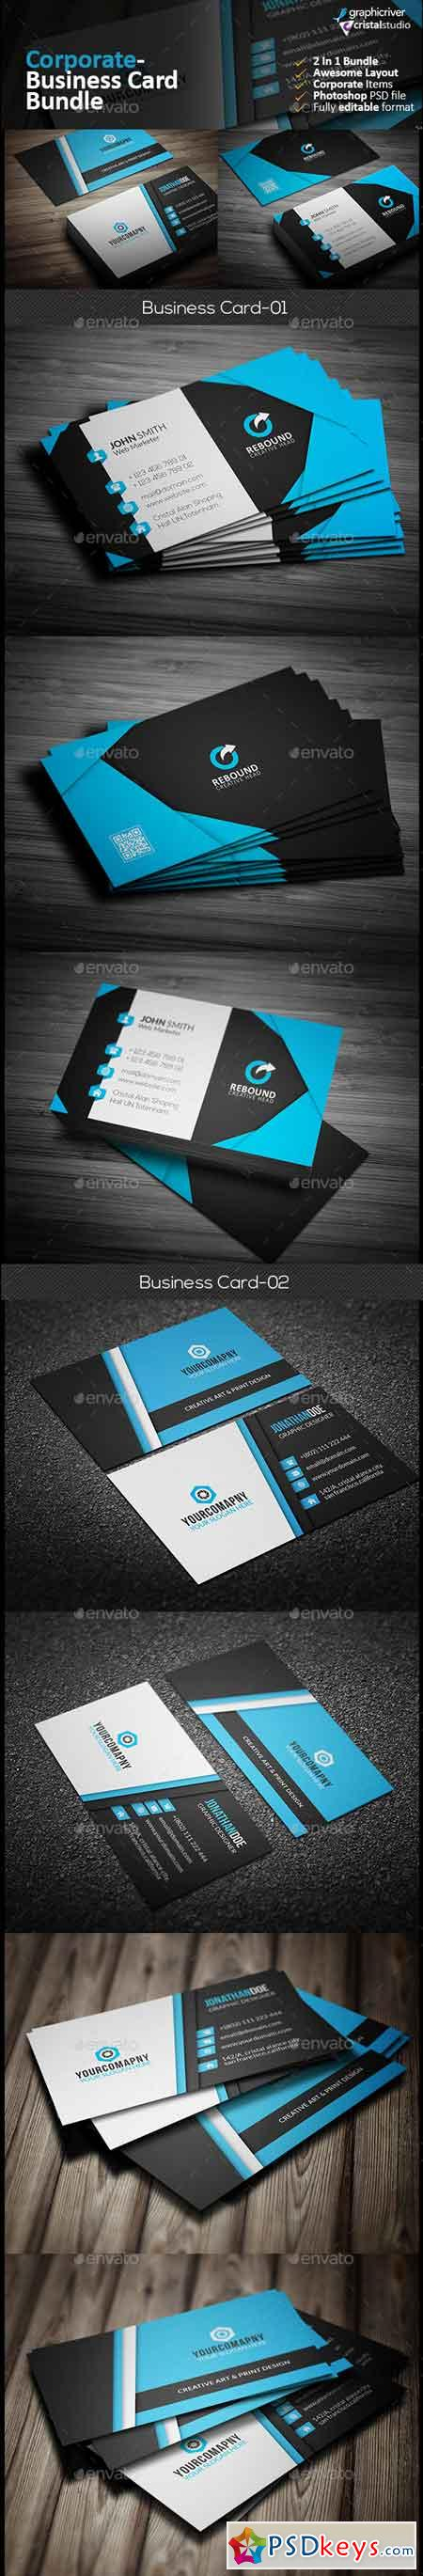 Business Card Bundle 2 in 1 13344214